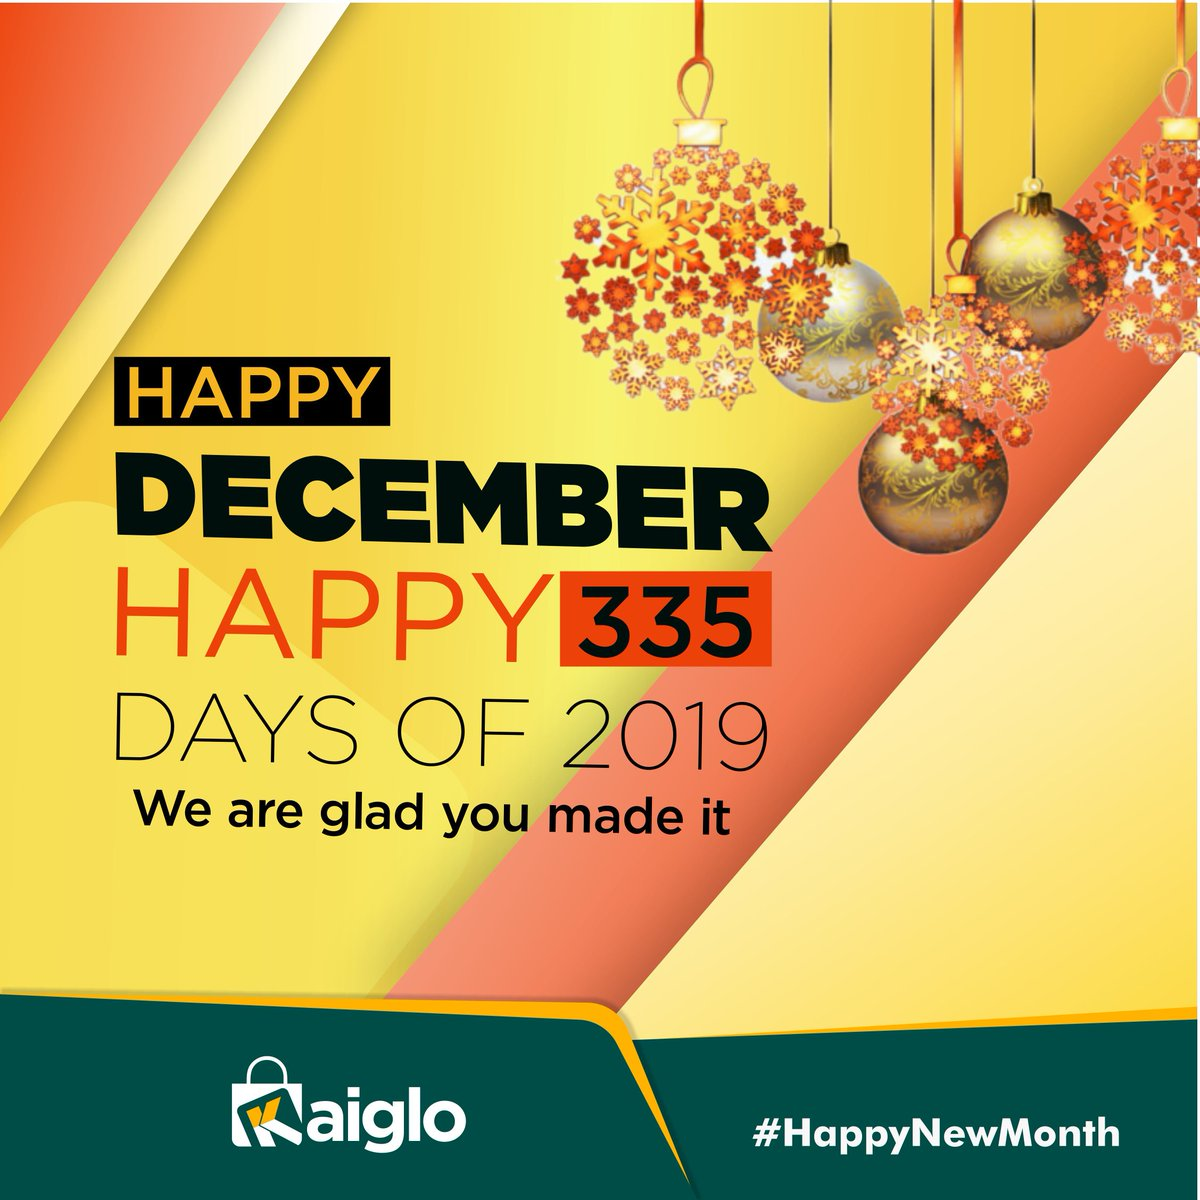 Happy New Month. Happy 335 days of 2019.  We're glad you made it.  Don't forget to visit  http://www. kaiglo.com/promo/black-fr iday  …   #Kaiglo #YourMarketsNowCloser #KaigloMarketplace #HappyNewMonth #HappyDecember #December1st<br>http://pic.twitter.com/wmJULcWz4p